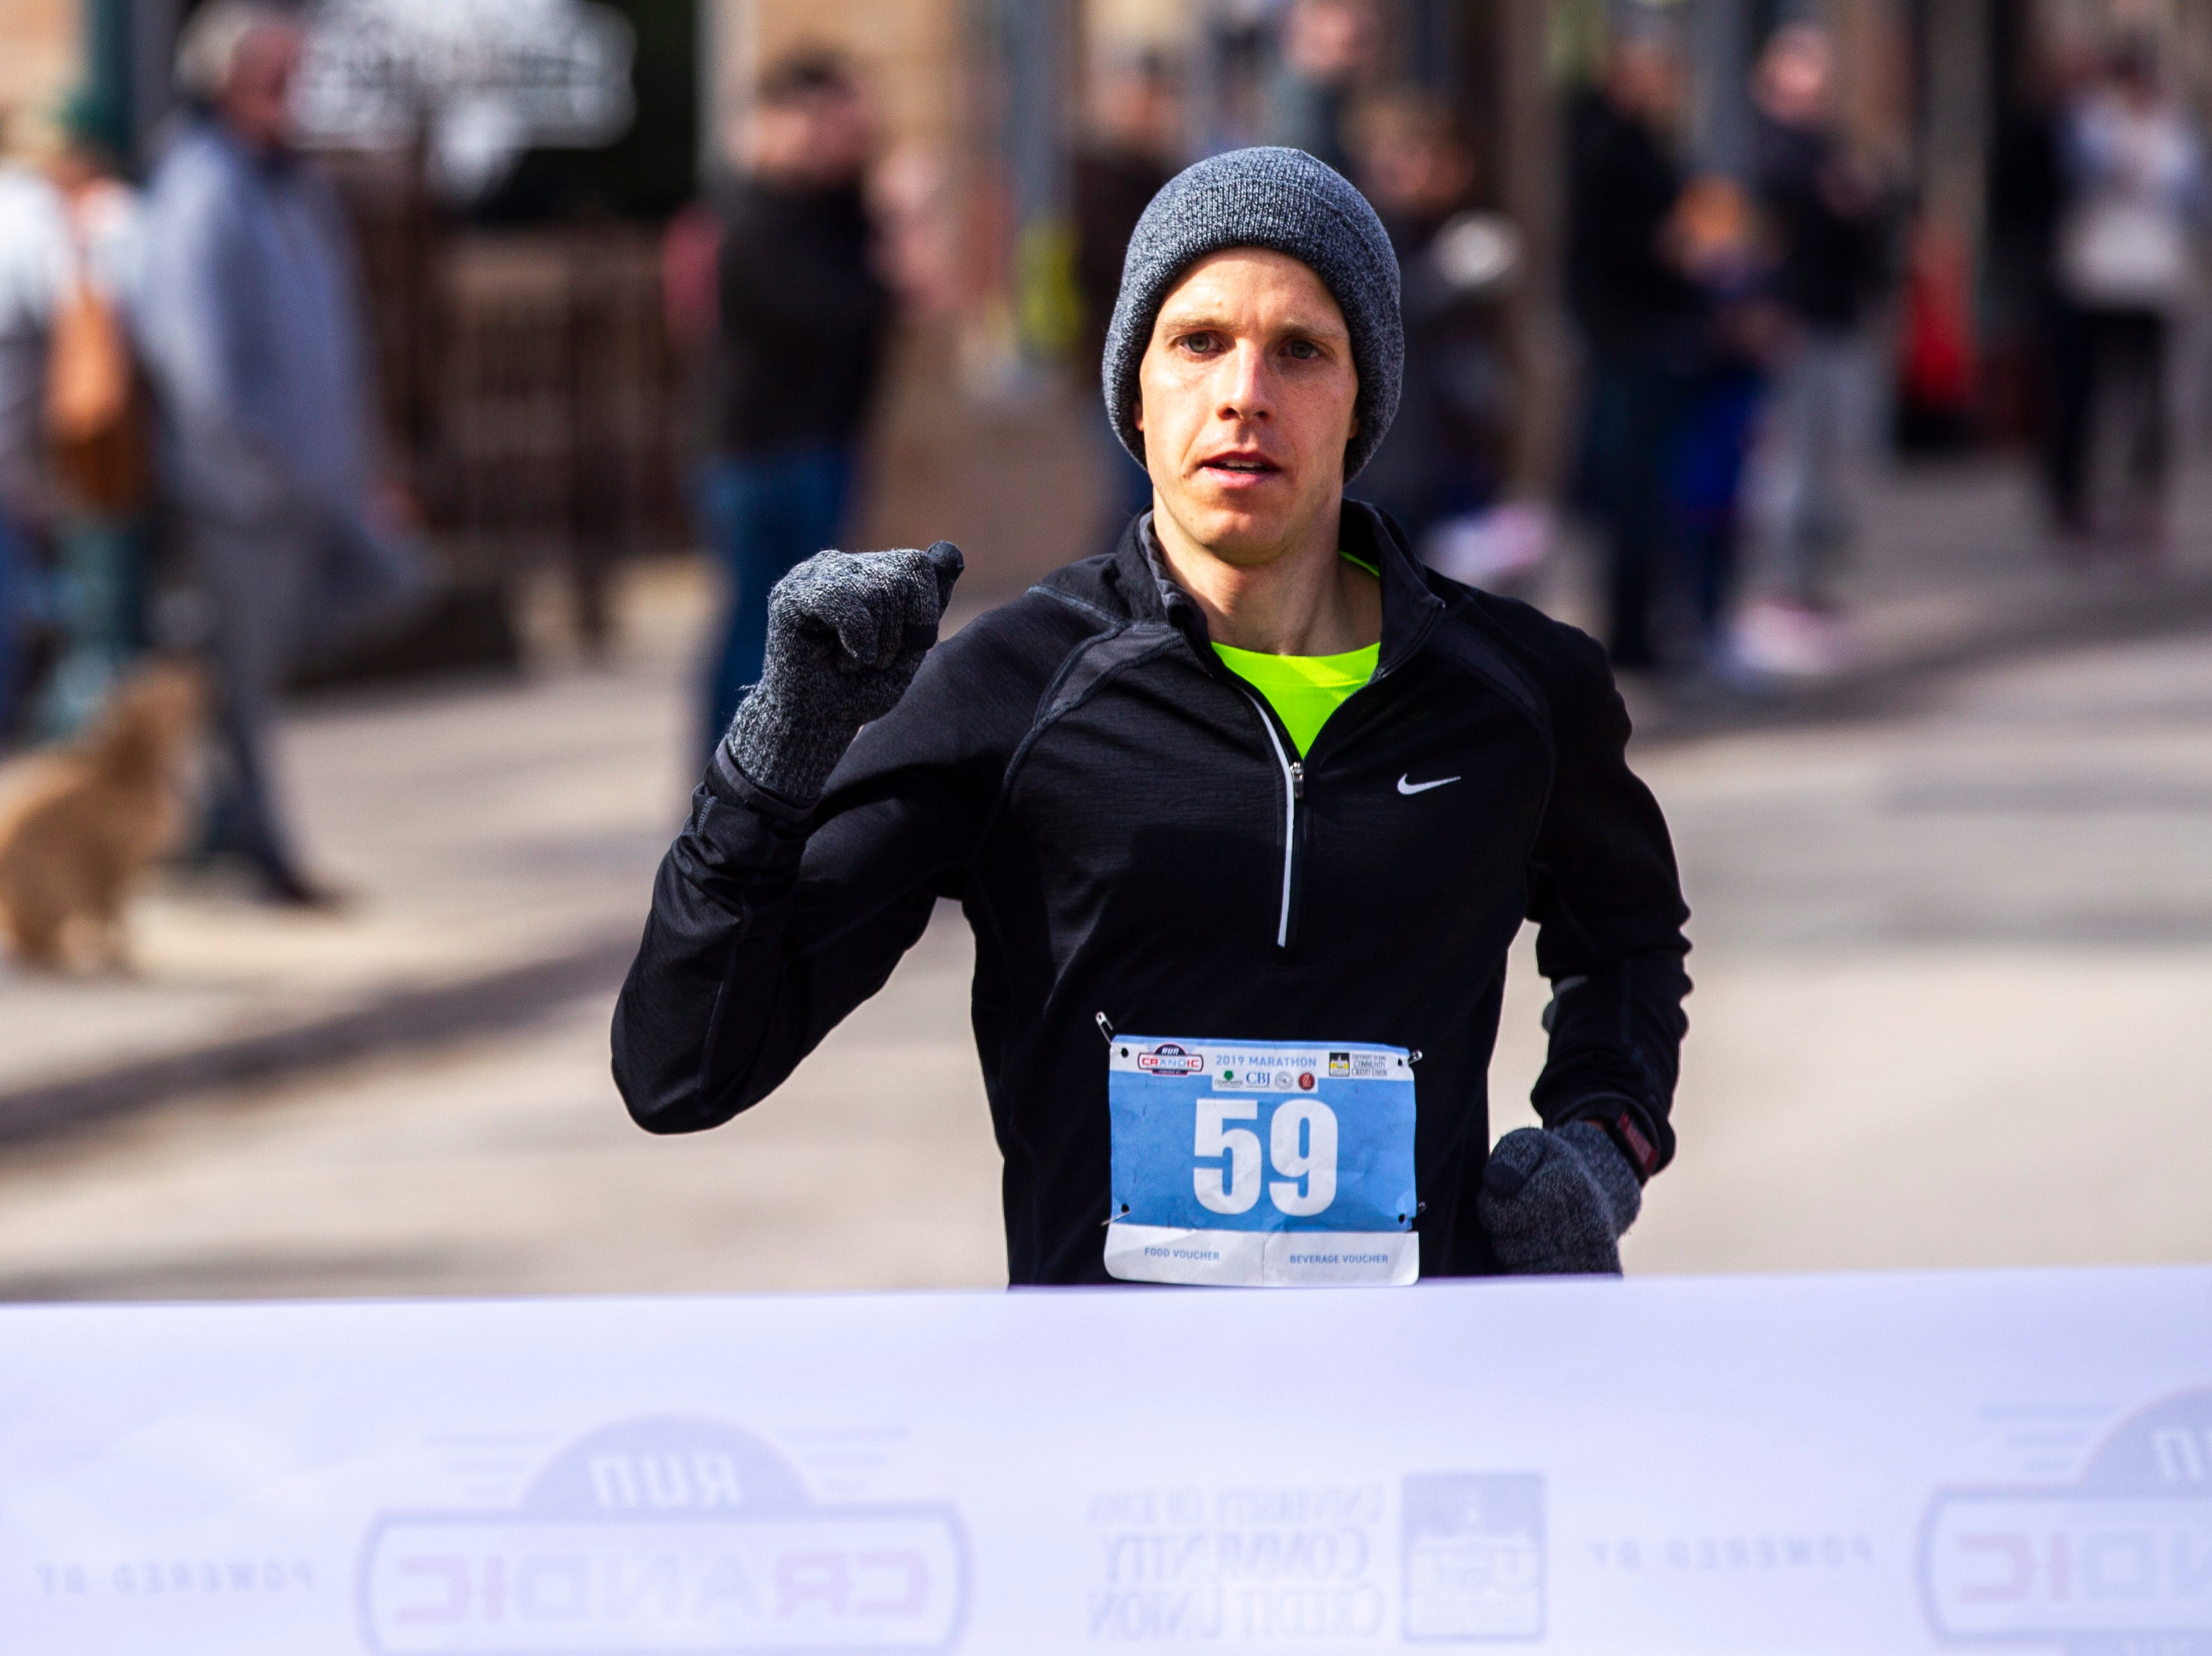 Tyler Culver of Cedar Rapids celebrates while crossing the finish line to be the first man to finish during the second annual Run CRANDIC marathon, Sunday, April 28, 2019, along 16th Avenue SE in Cedar Rapids, Iowa. Culver finished with a time of 2:50:02.